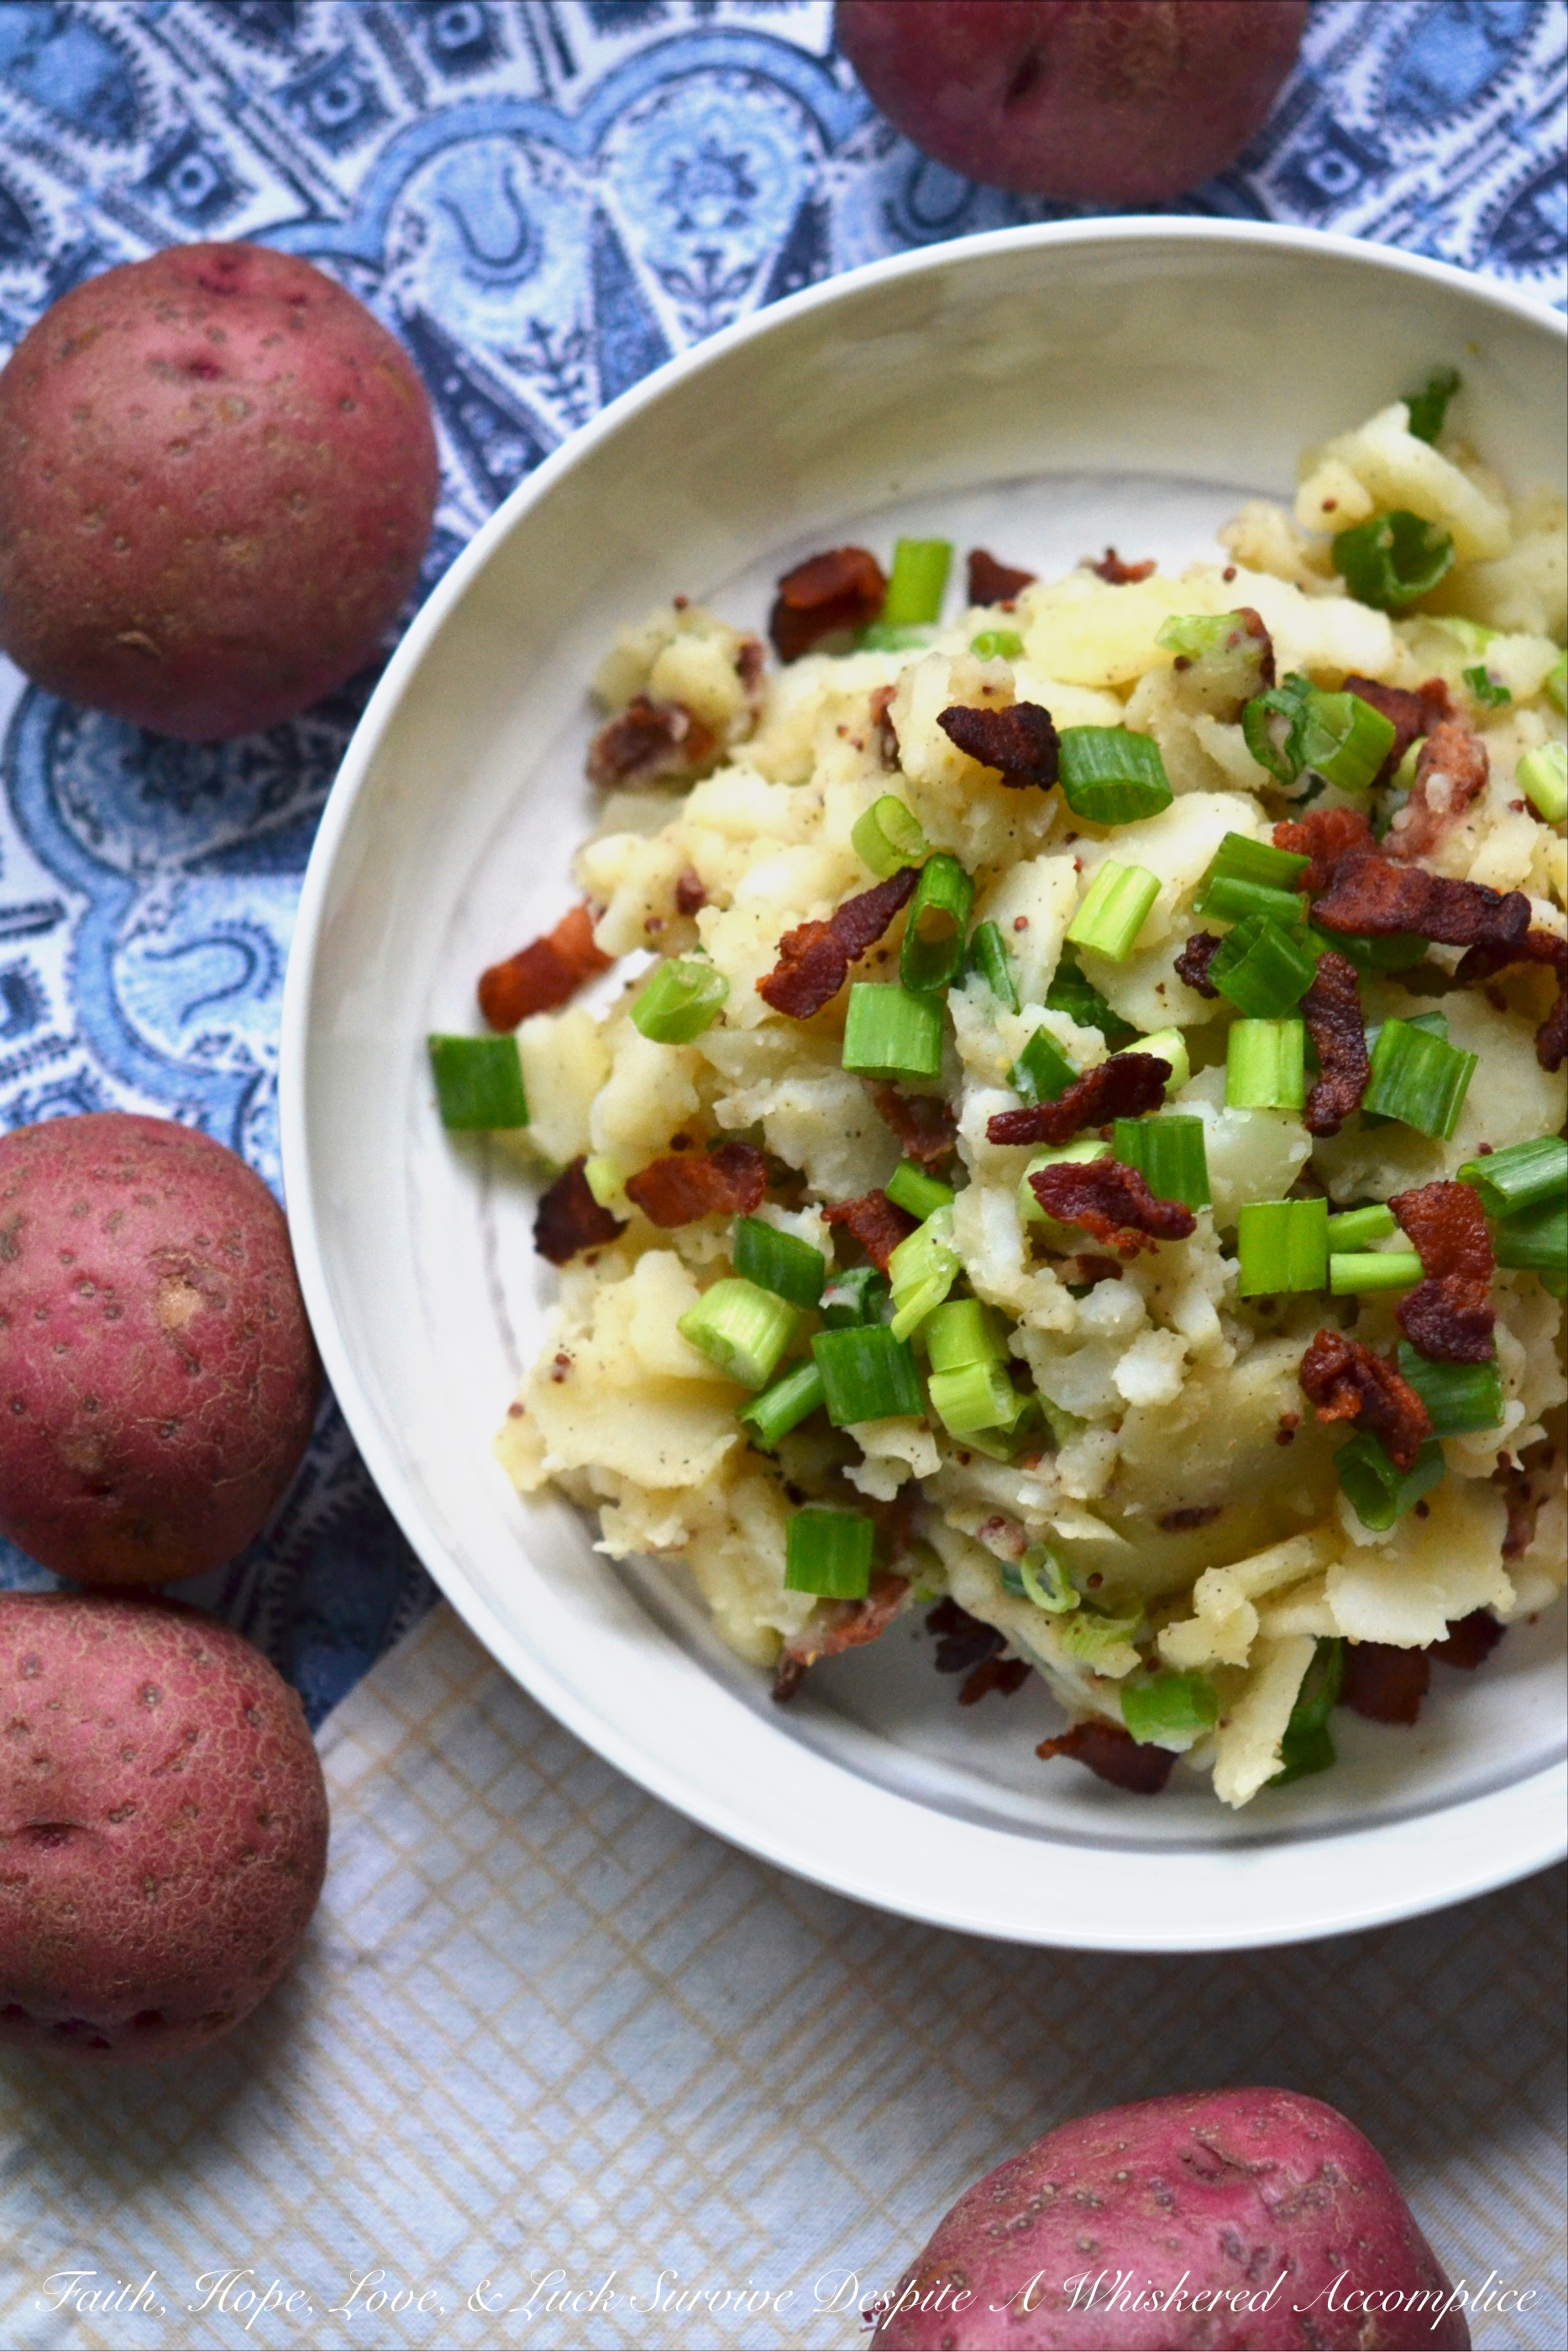 Hot German Potato Salad with Bacon